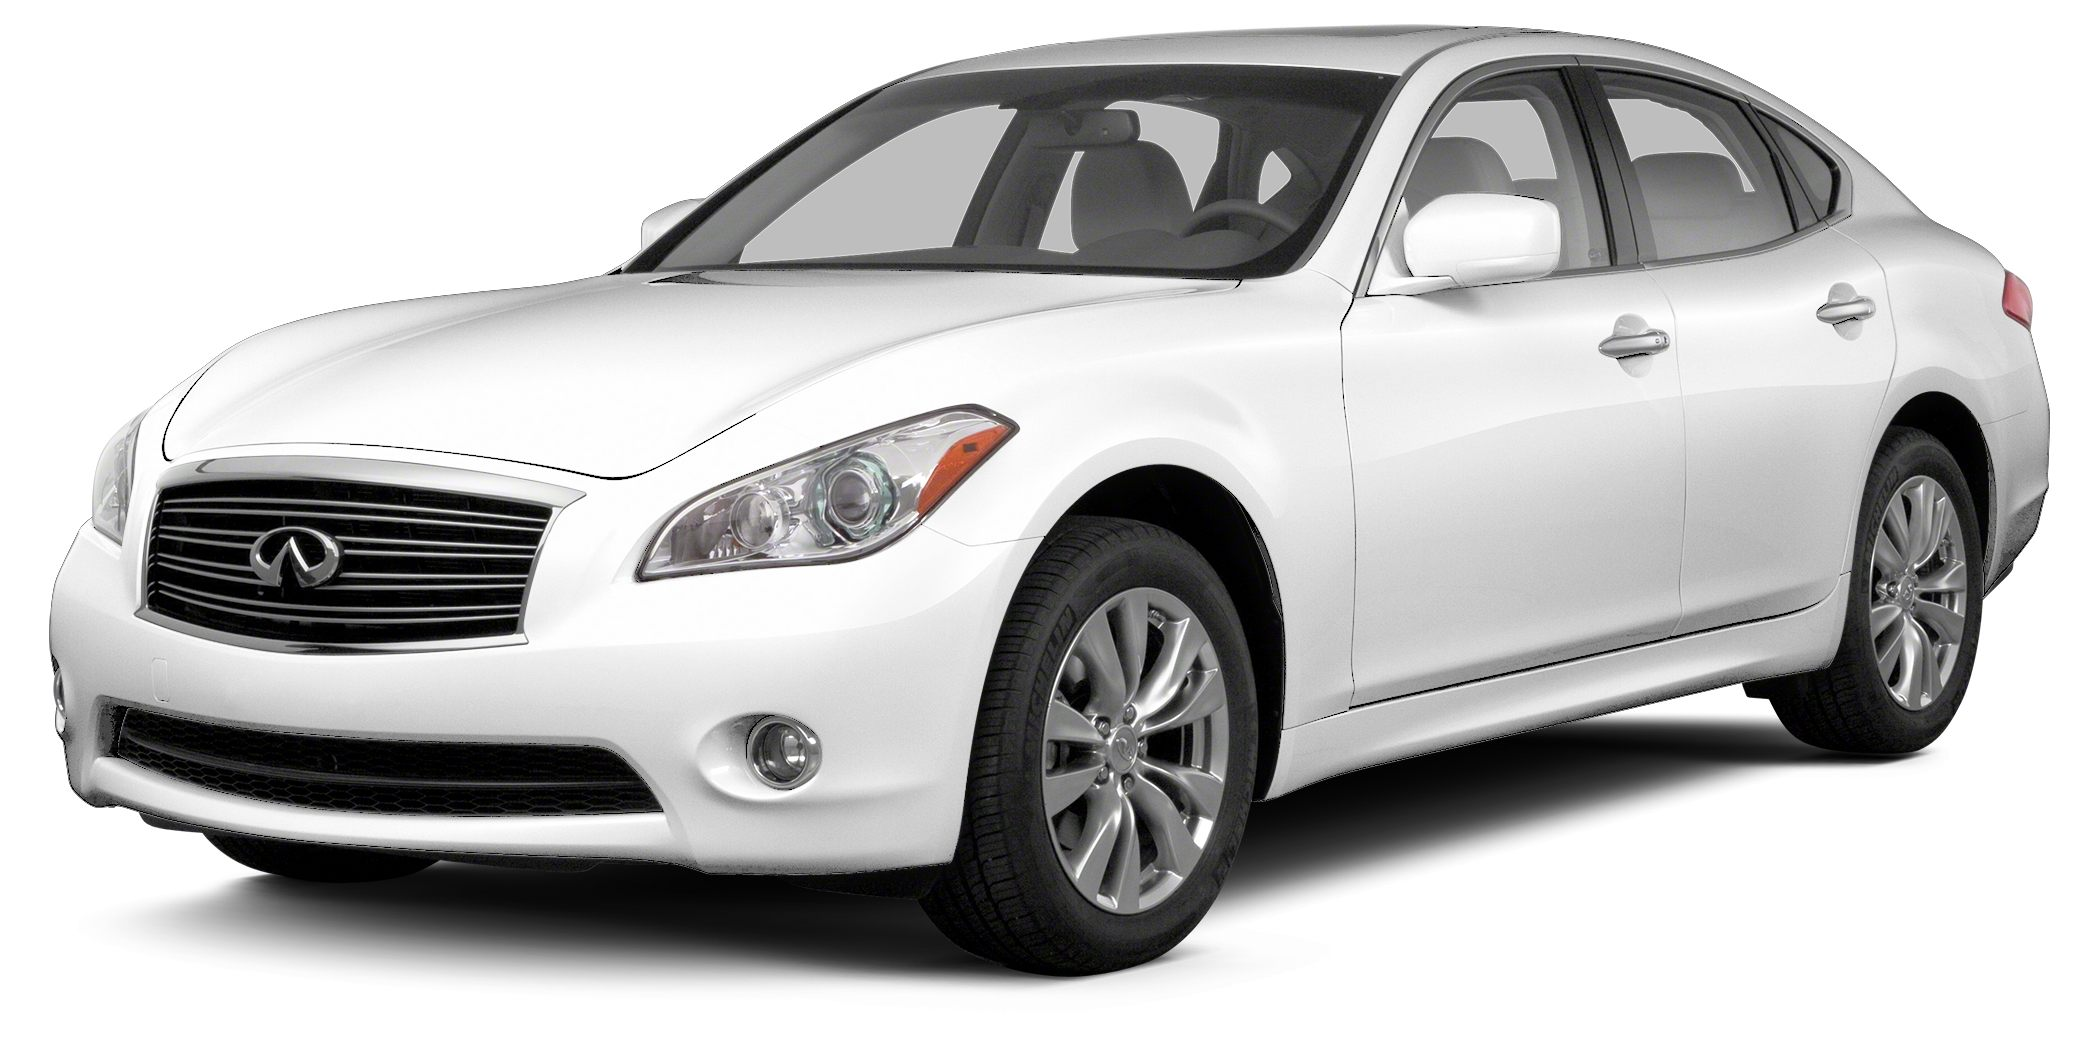 2013 Infiniti M37 Base No Haggle Price Low miles INFINITY with Adaptive Cruise Control Navigat